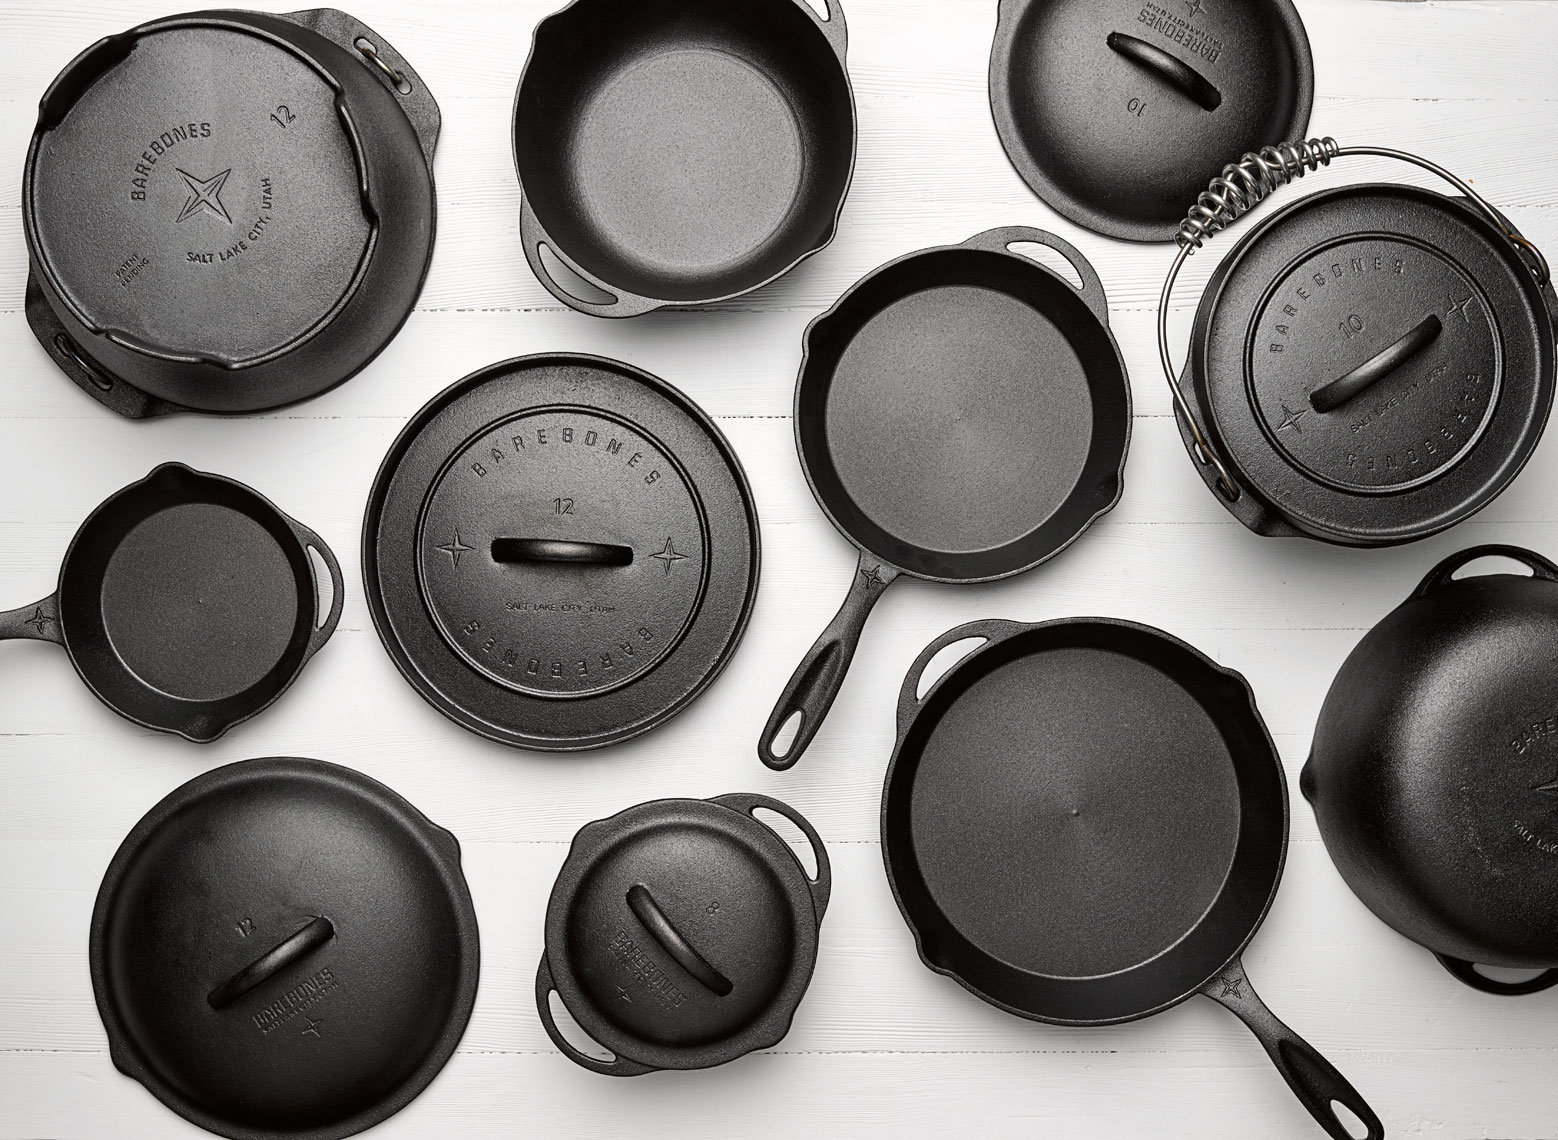 Cast iron pot and pan collection